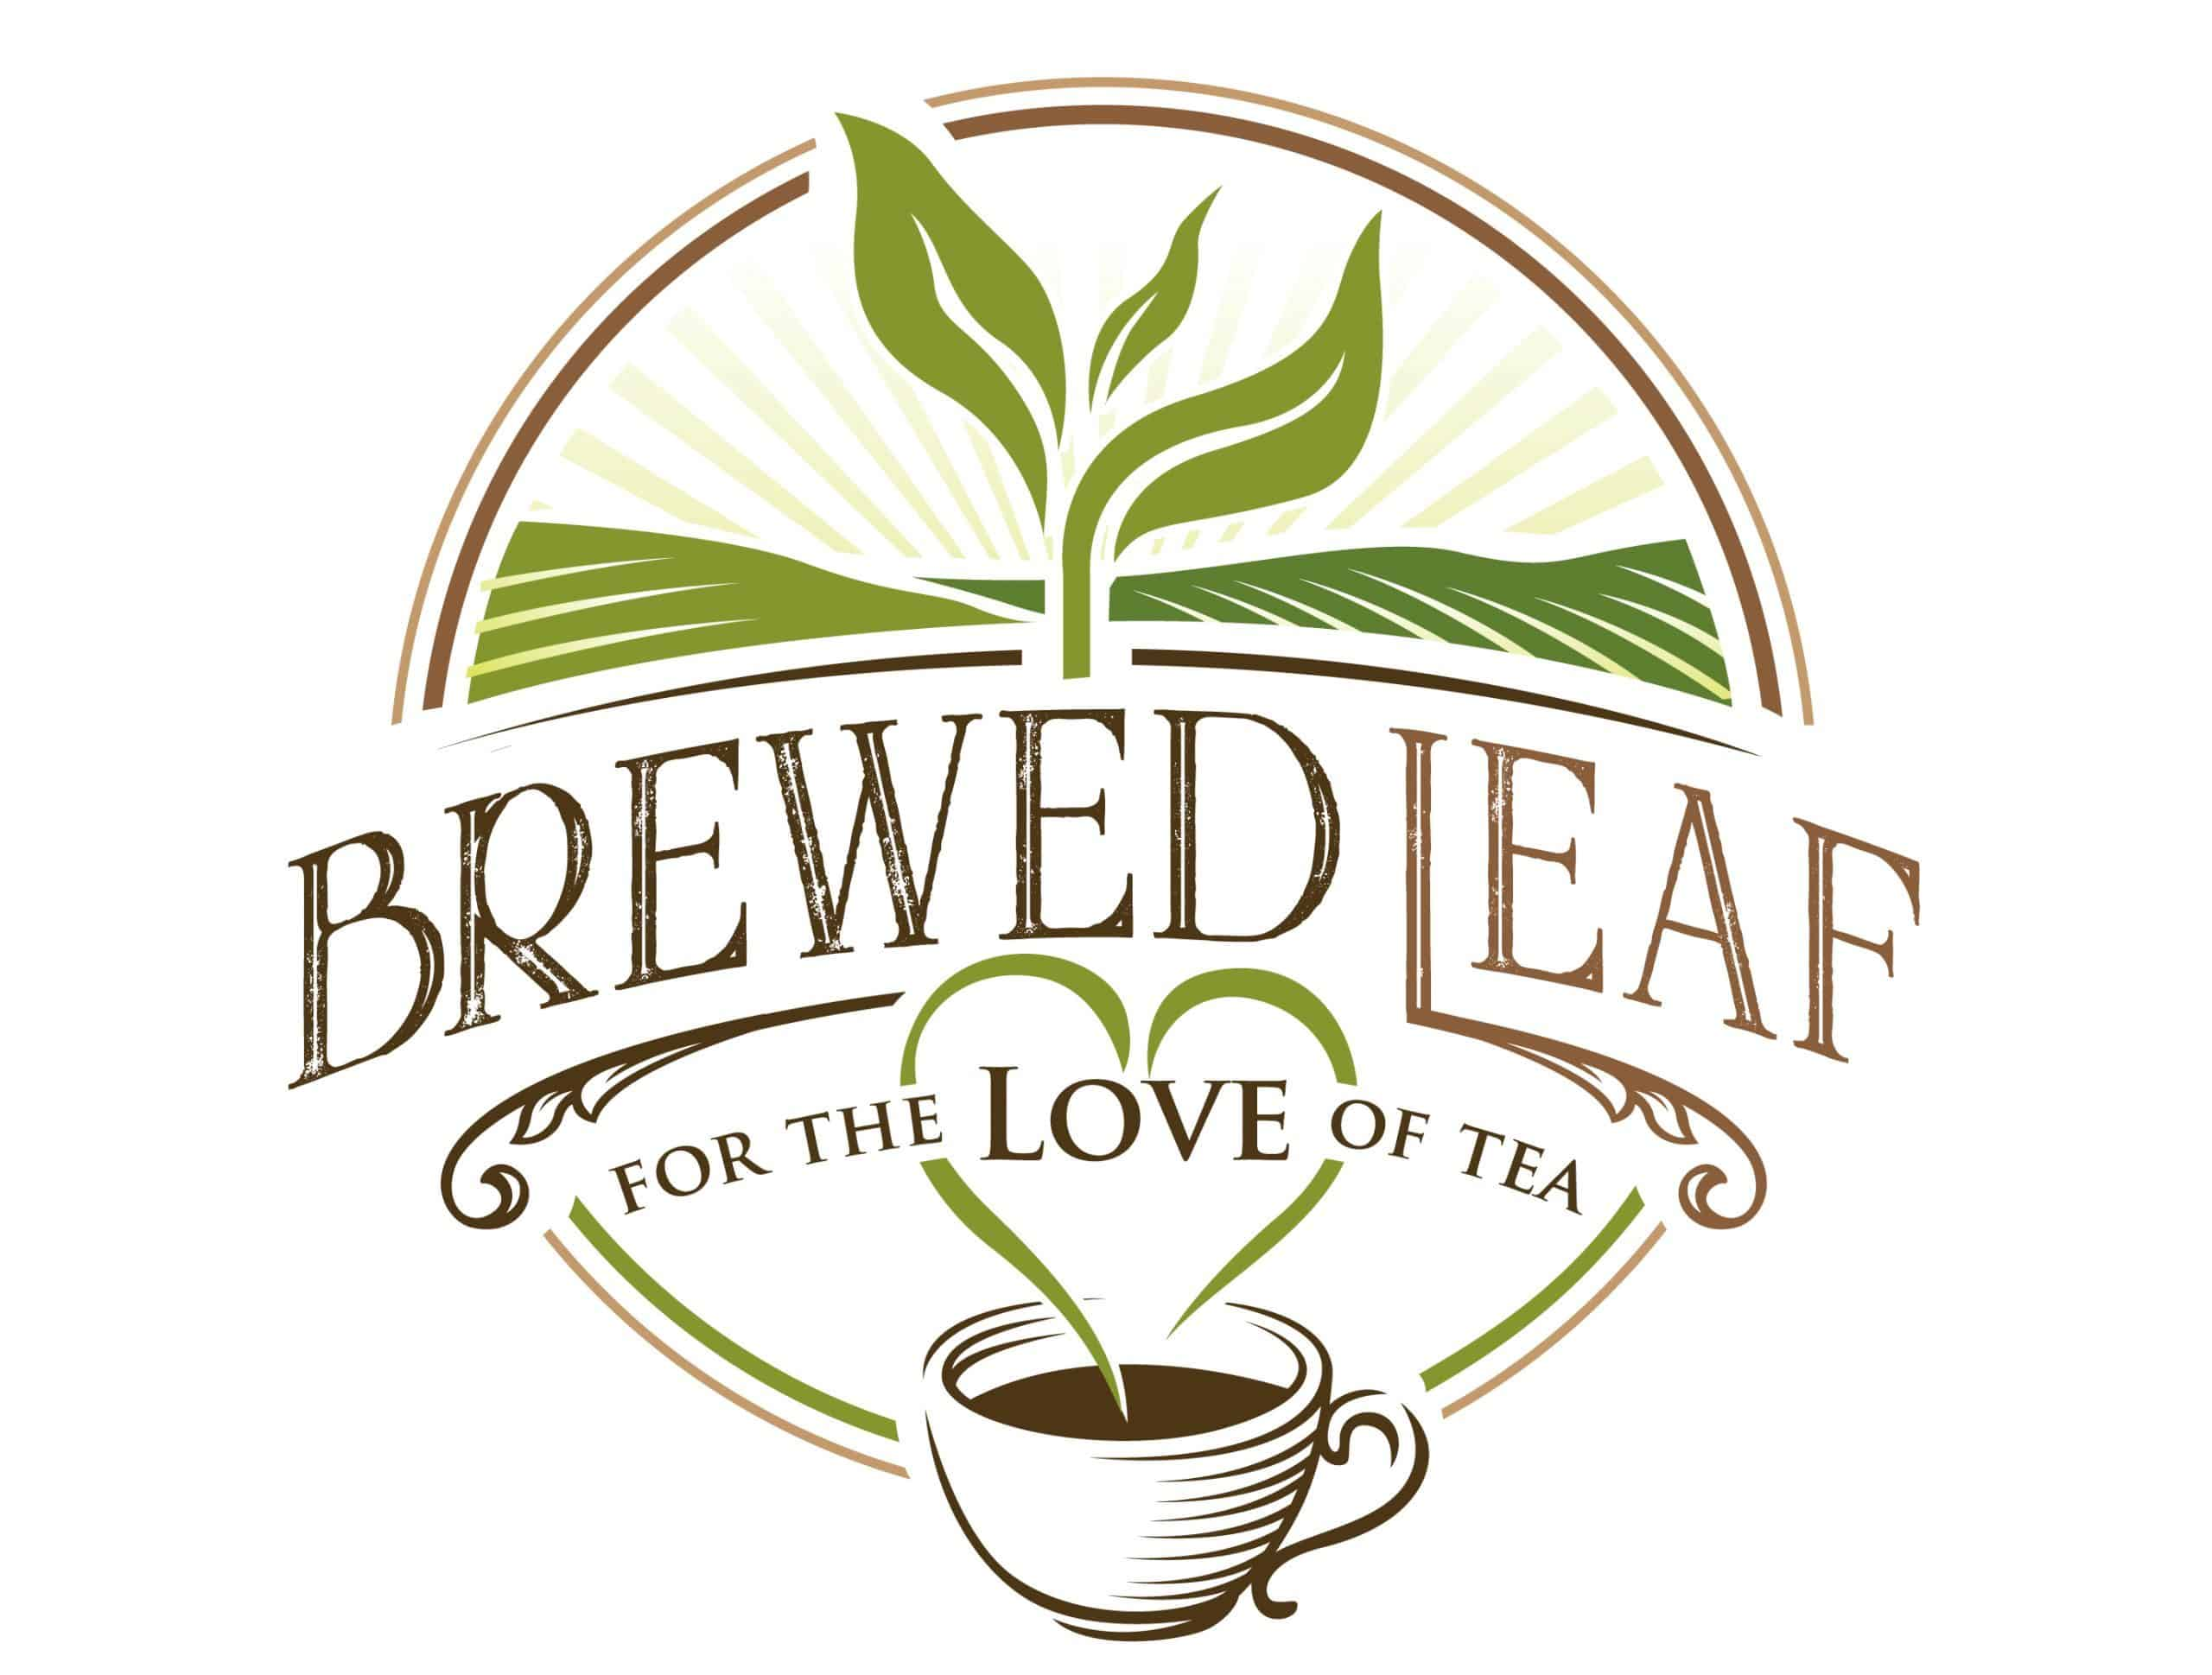 Brewed Leaf Love